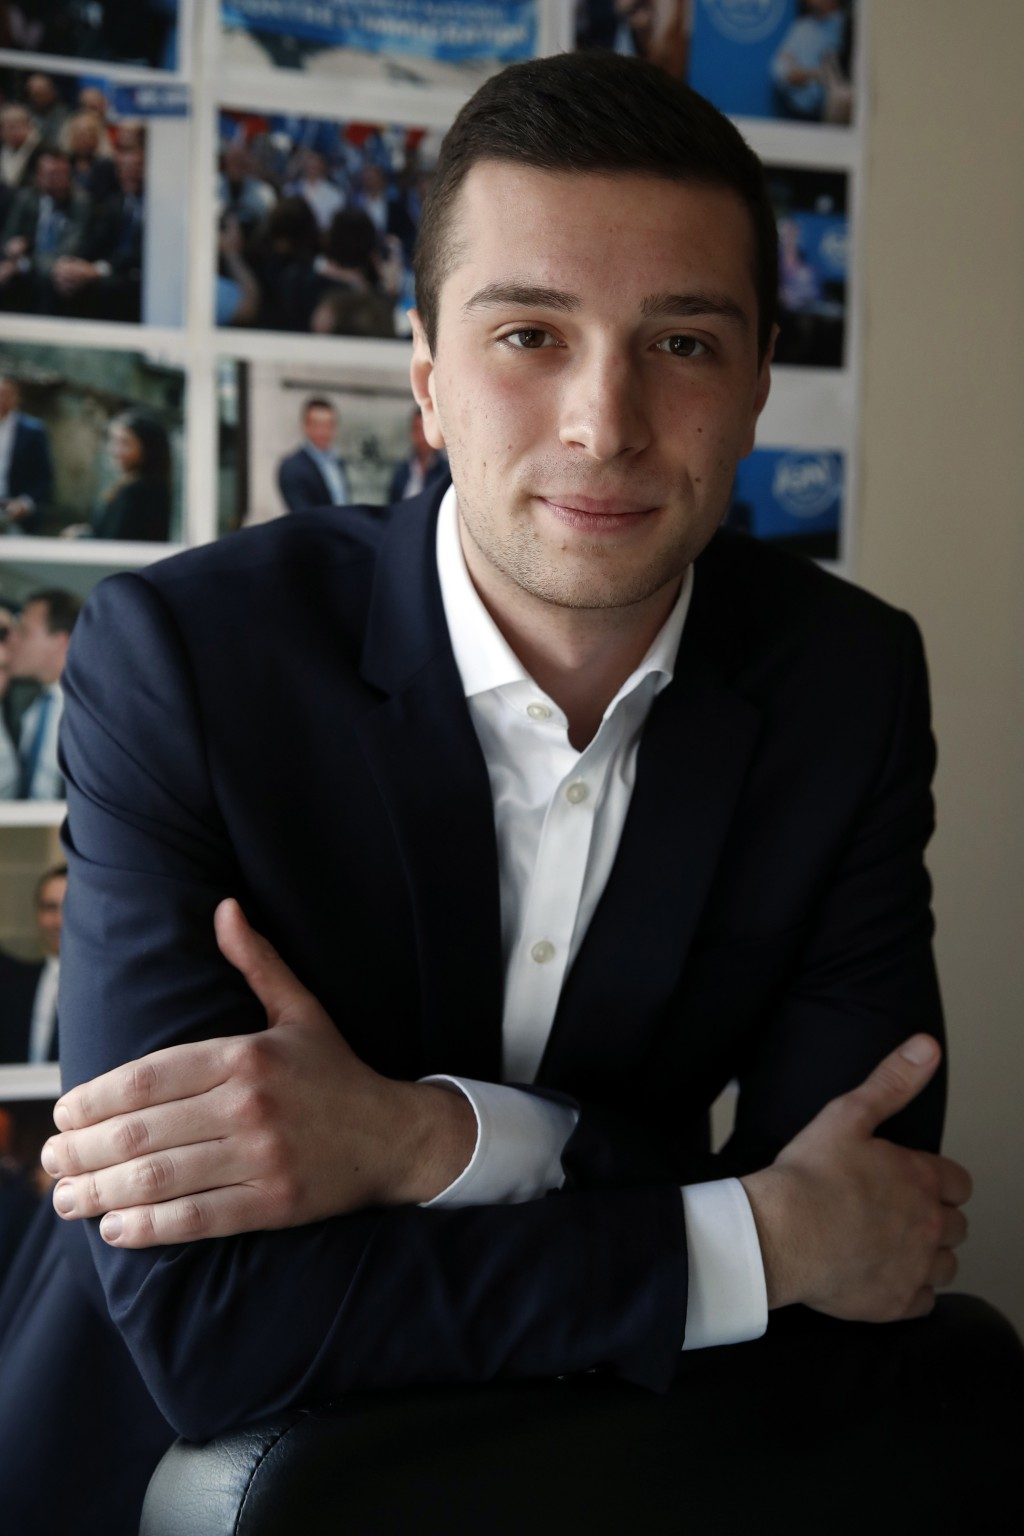 FILE - In this Wednesday, Feb. 20, 2019 file photo, Jordan Bardella, 23, poses for portrait in Nanterre, outside Paris. He joined the far right Nation